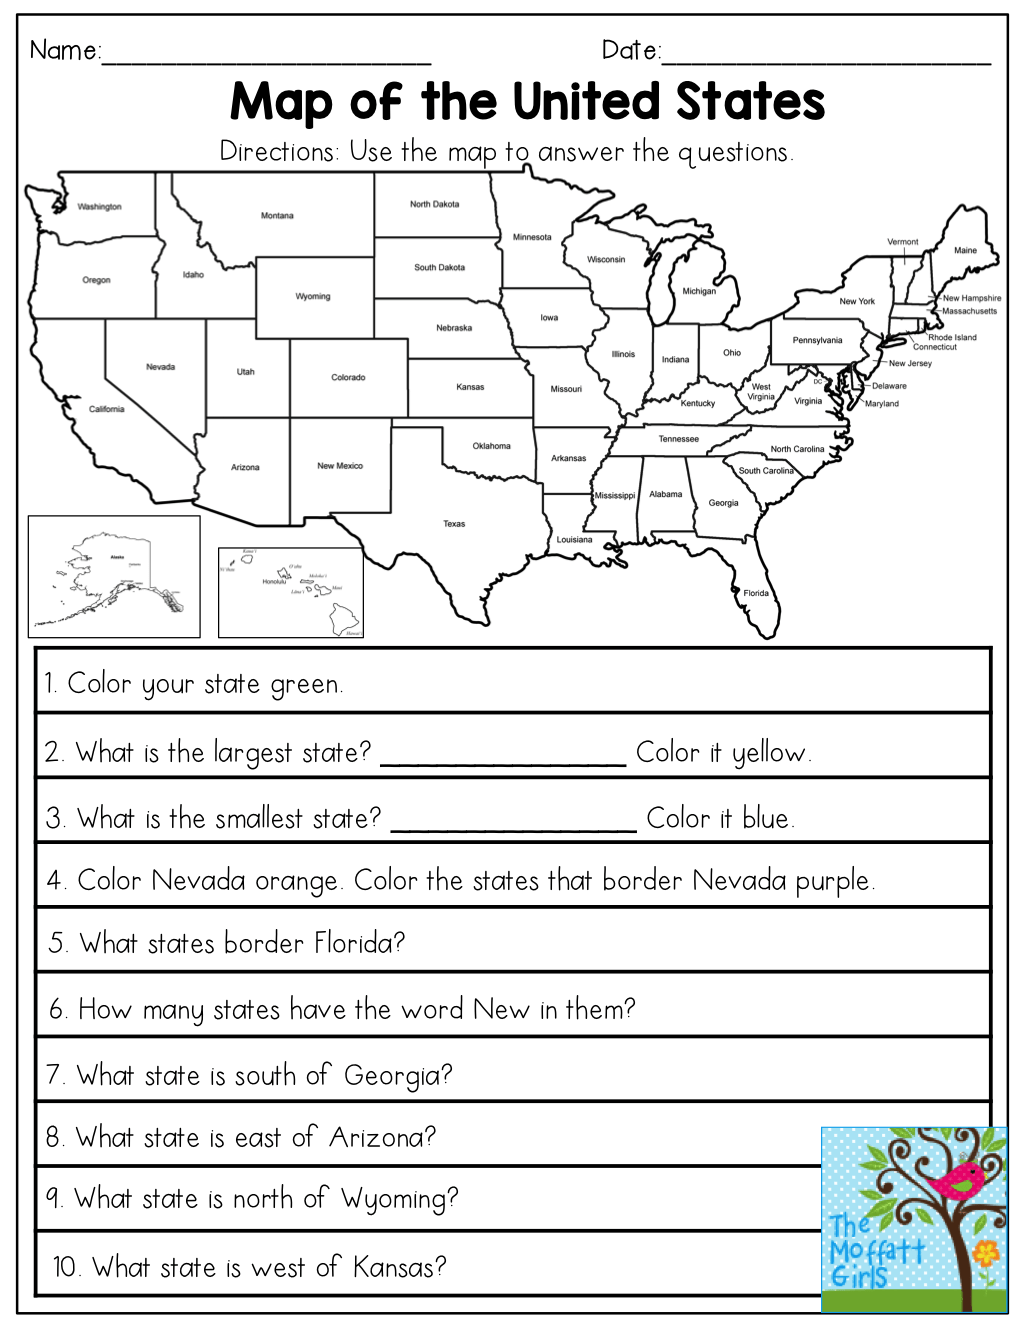 Map Of The United States Answer The Questions This